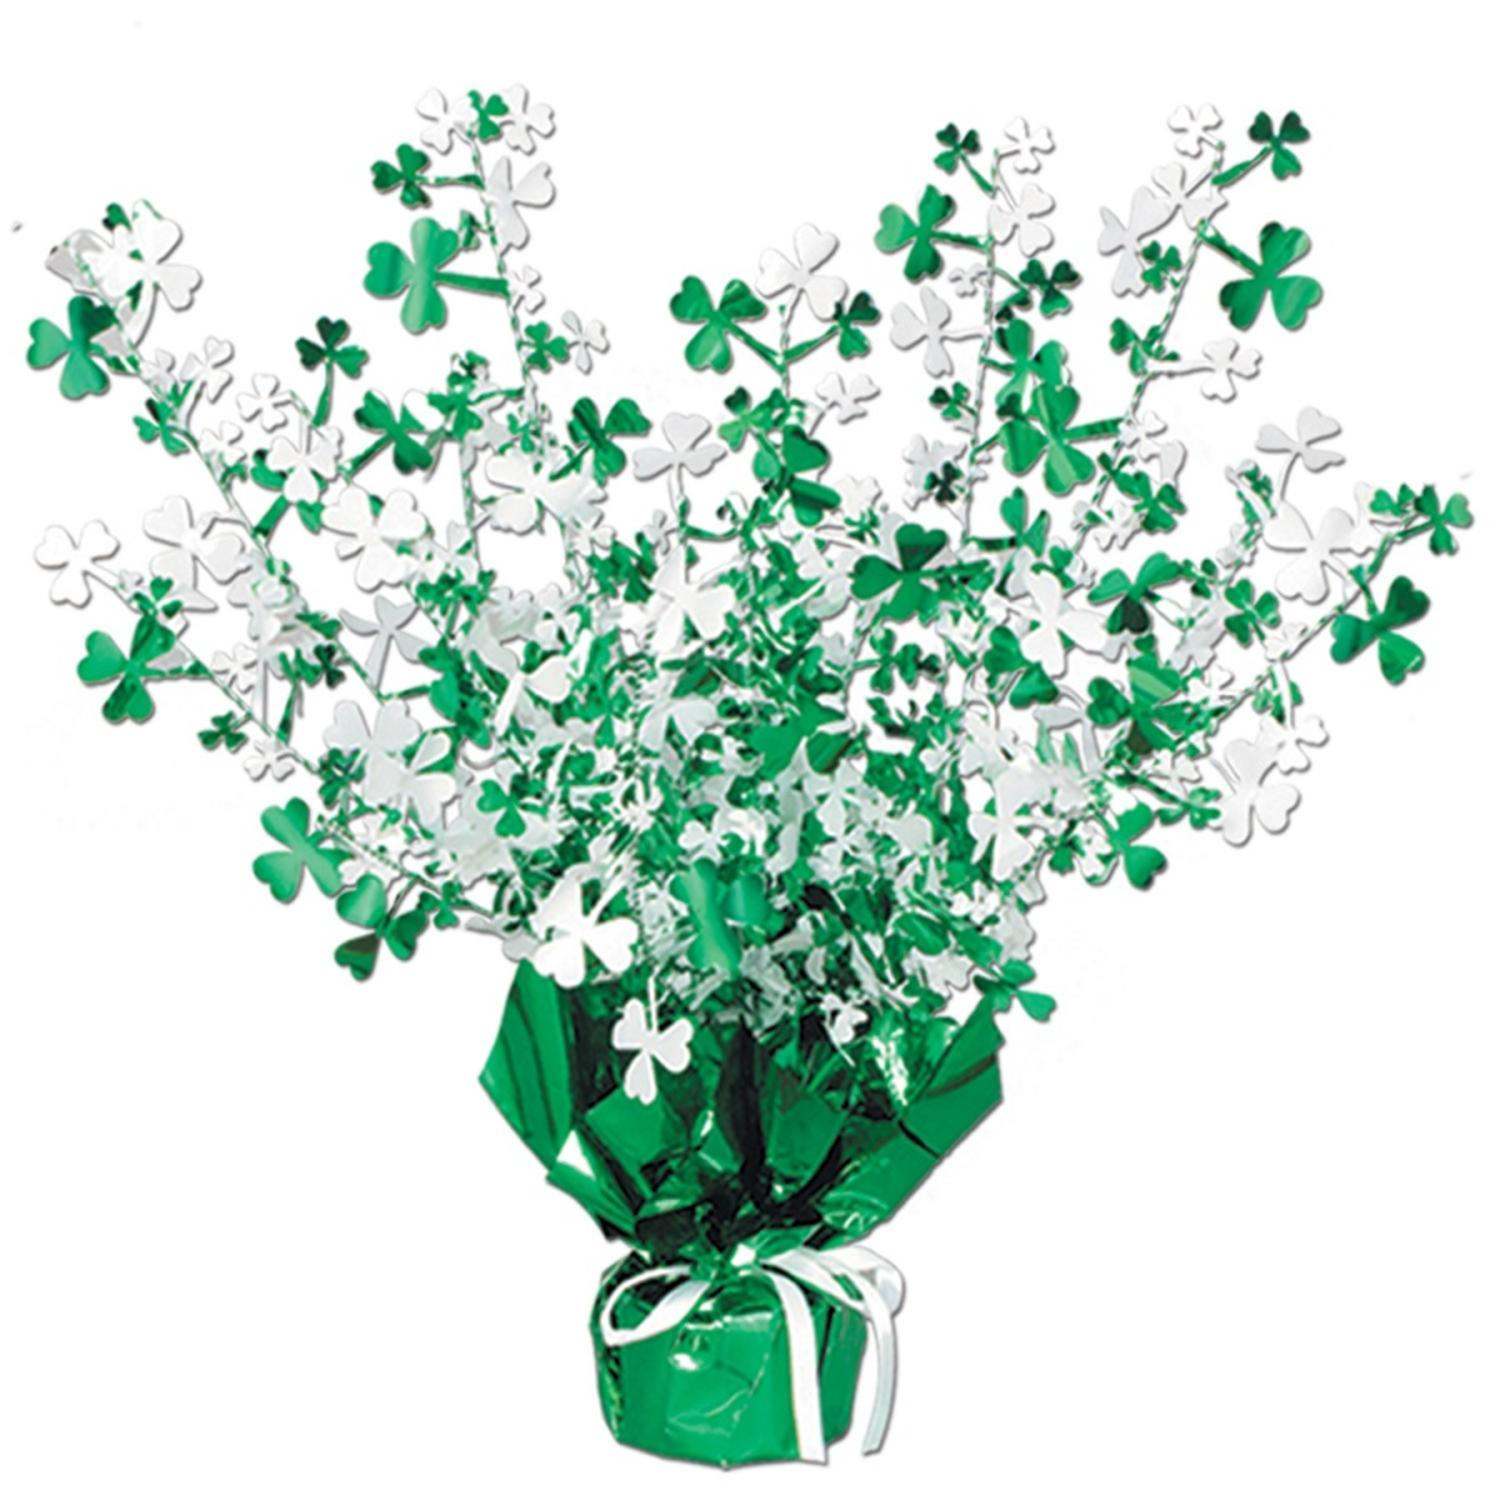 Club Pack of 12 Shamrock Gleam 'N Burst St. Patrick's Day Centerpiece Decorations 15""